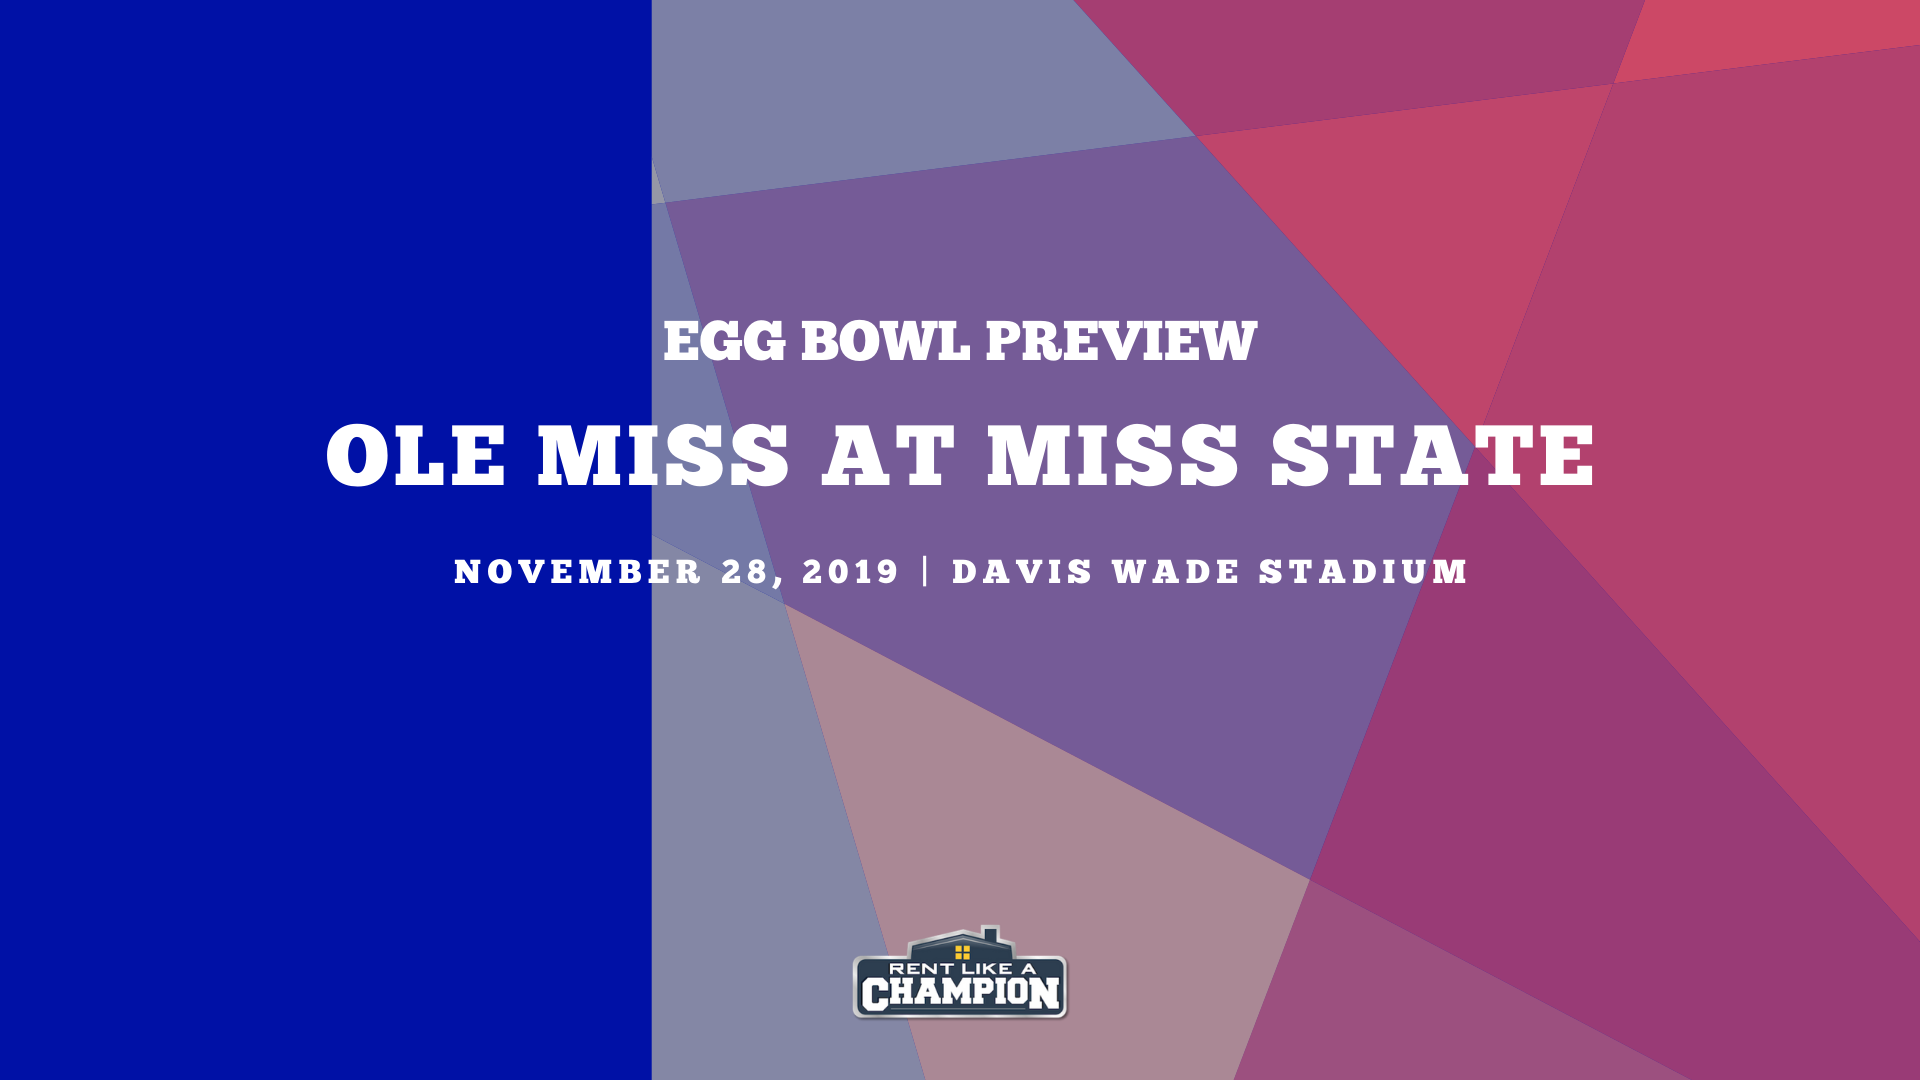 Ole Miss at Mississippi State: Preview, keys to the game, and predictions